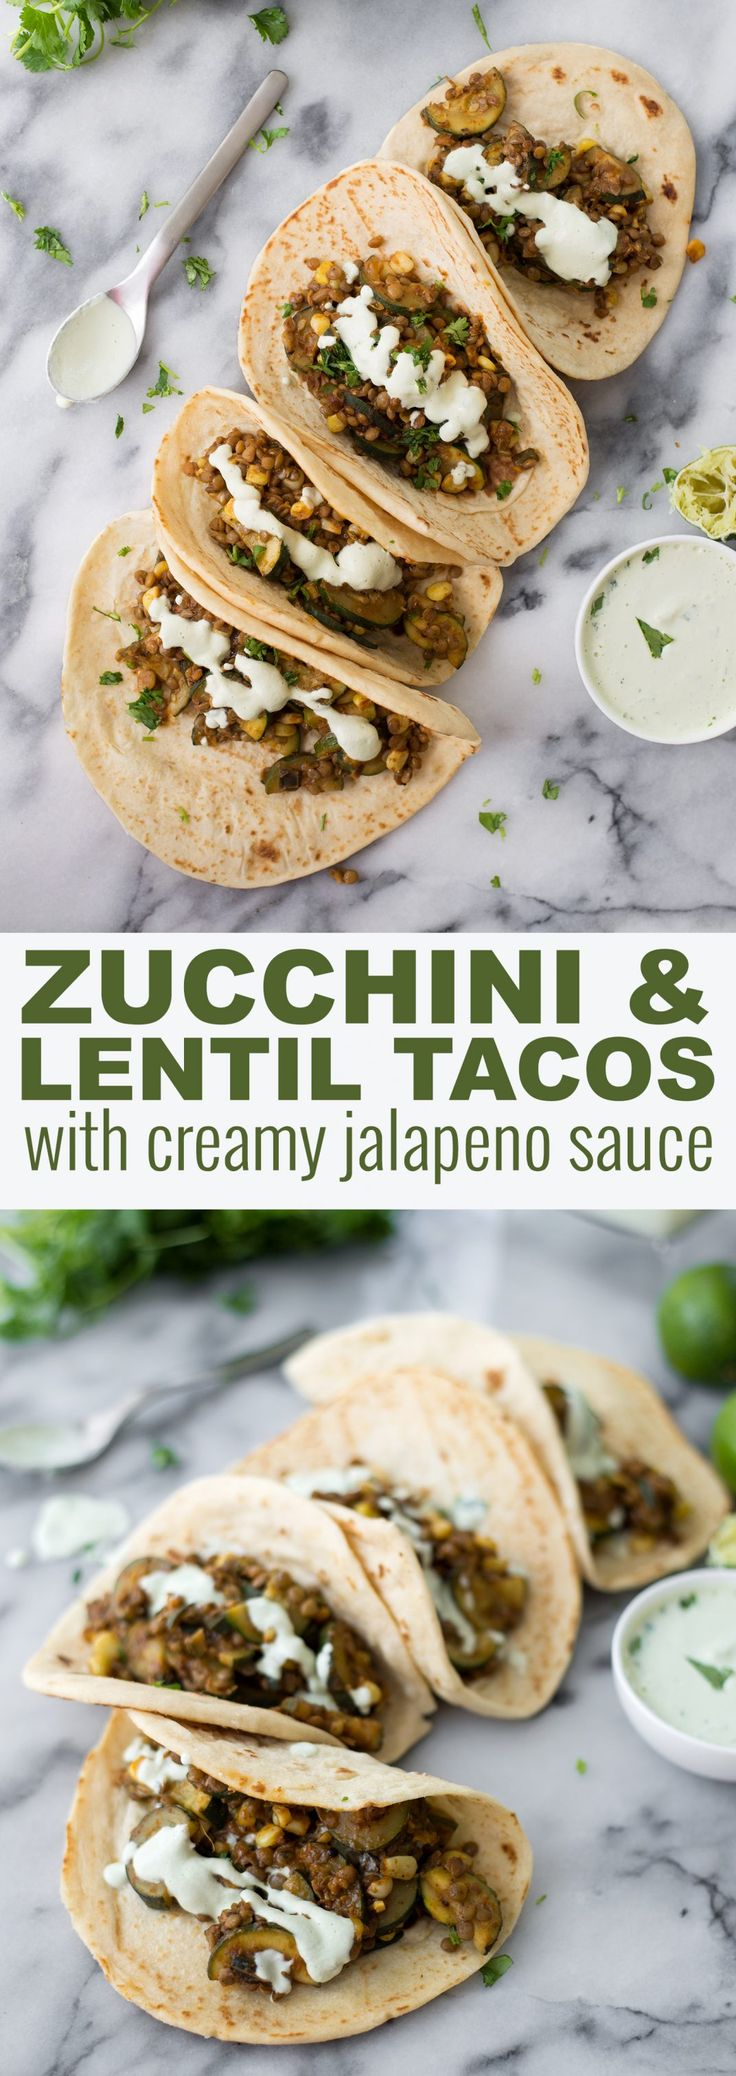 Vegan Zucchini and Lentil Tacos! A perfect weeknight dinner. Spicy zucchini, corn and brown lentils with a creamy jalapeno-lime sauce.